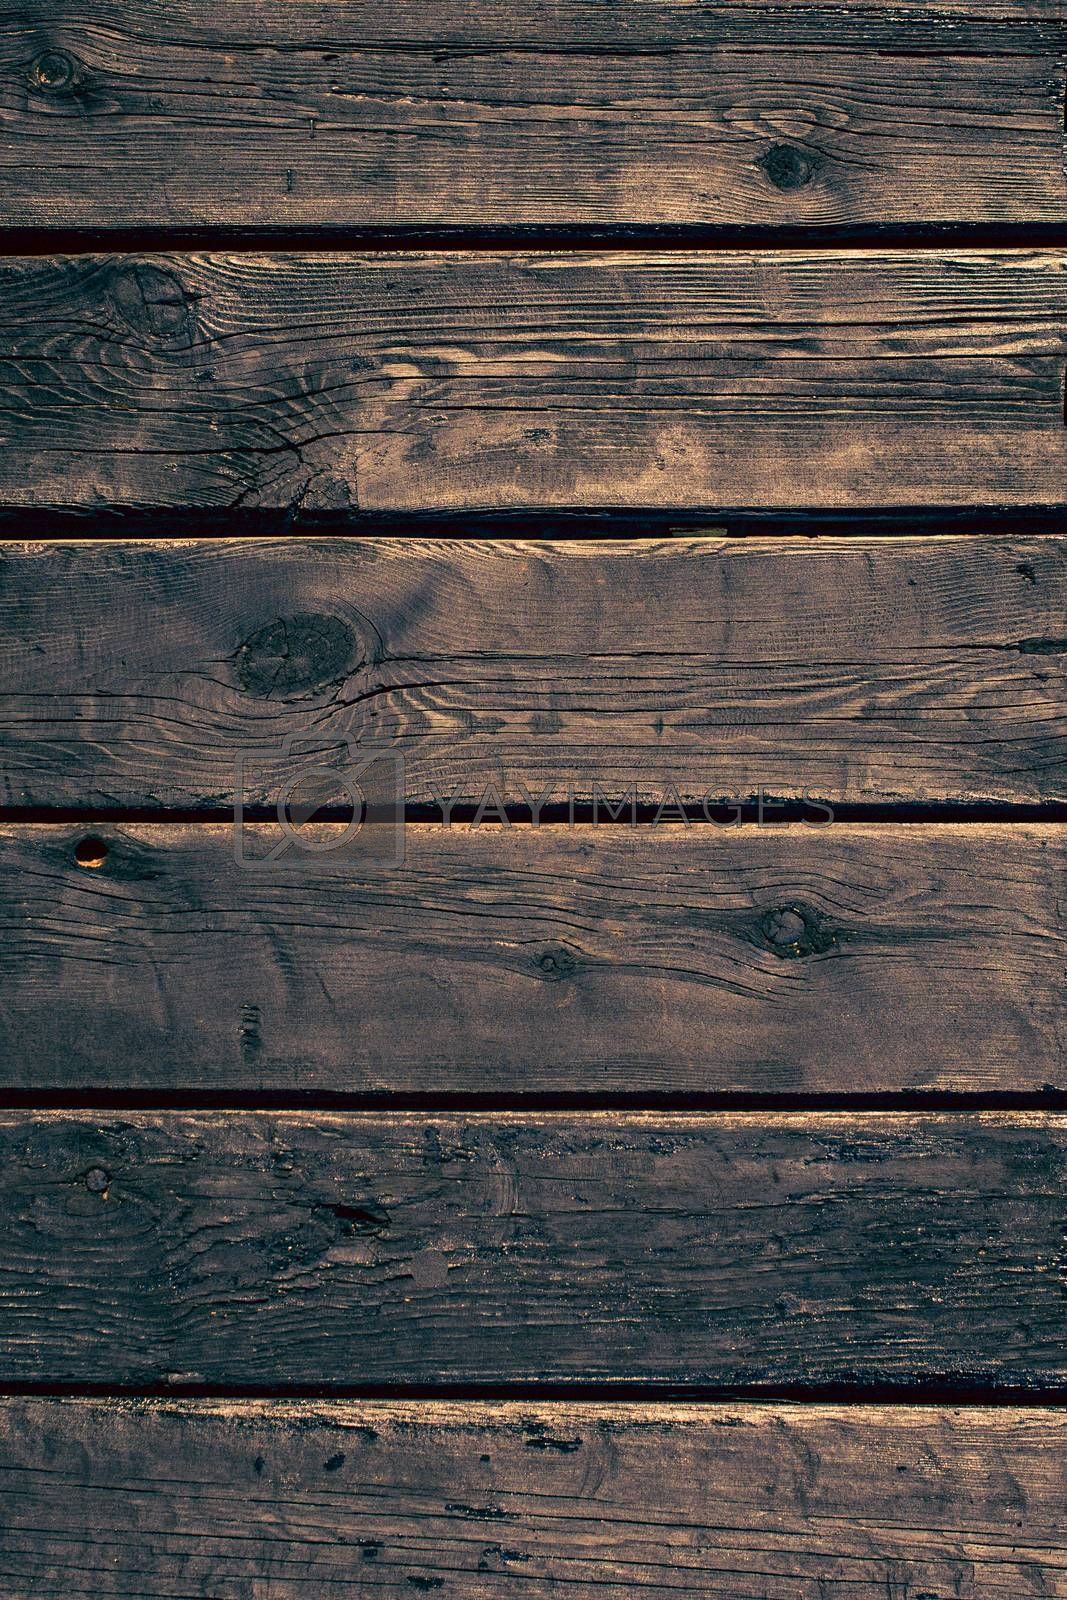 Wooden plunks as background by berkay